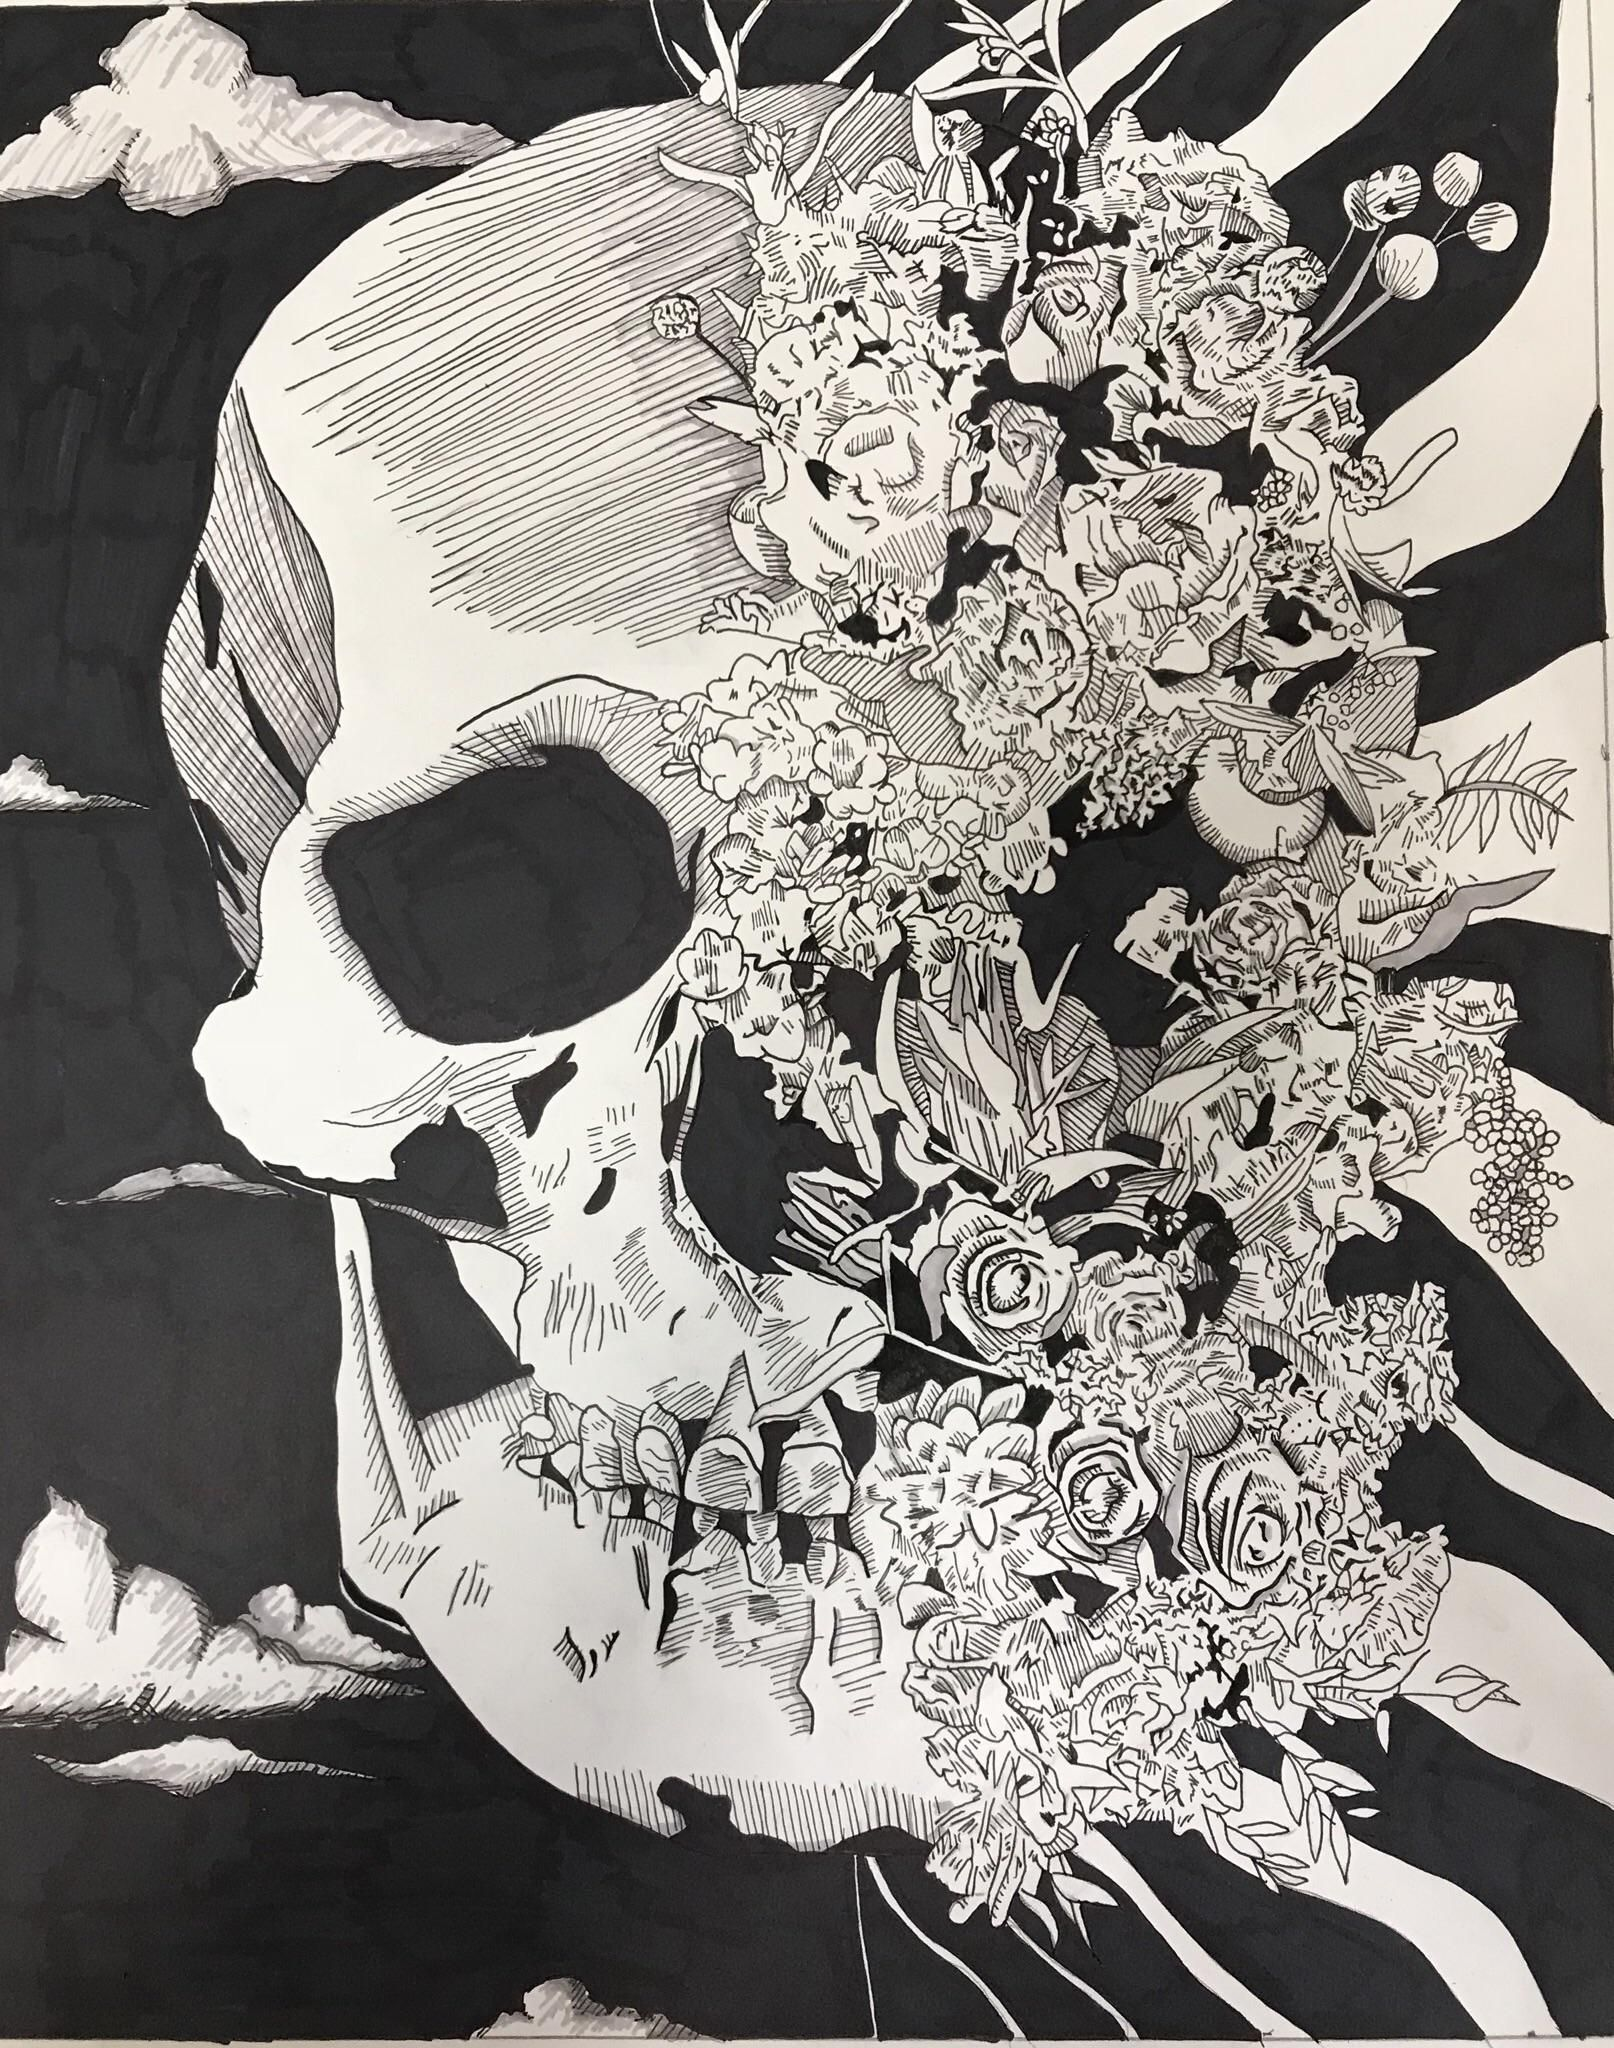 Life Death Made With Micron Pens Black Sharpie And Grey Marker